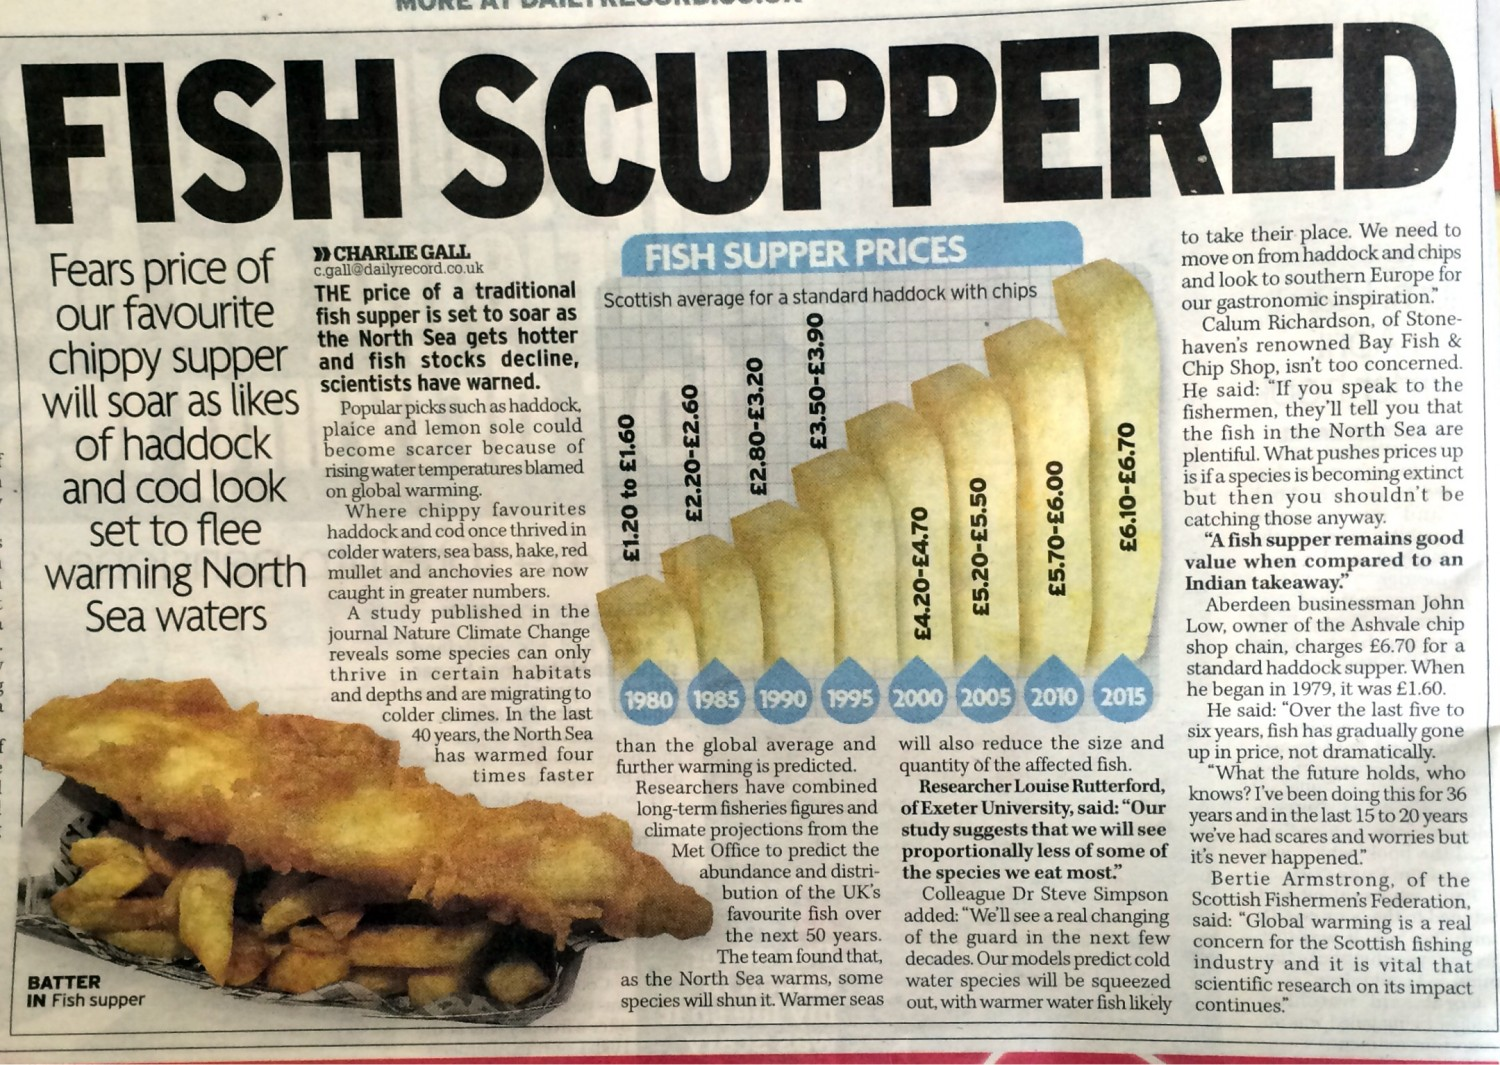 Read Chef Director Calum's opinion, as reported in the Daily Record, on the fears of fish supper prices soaring if fish stocks decline.